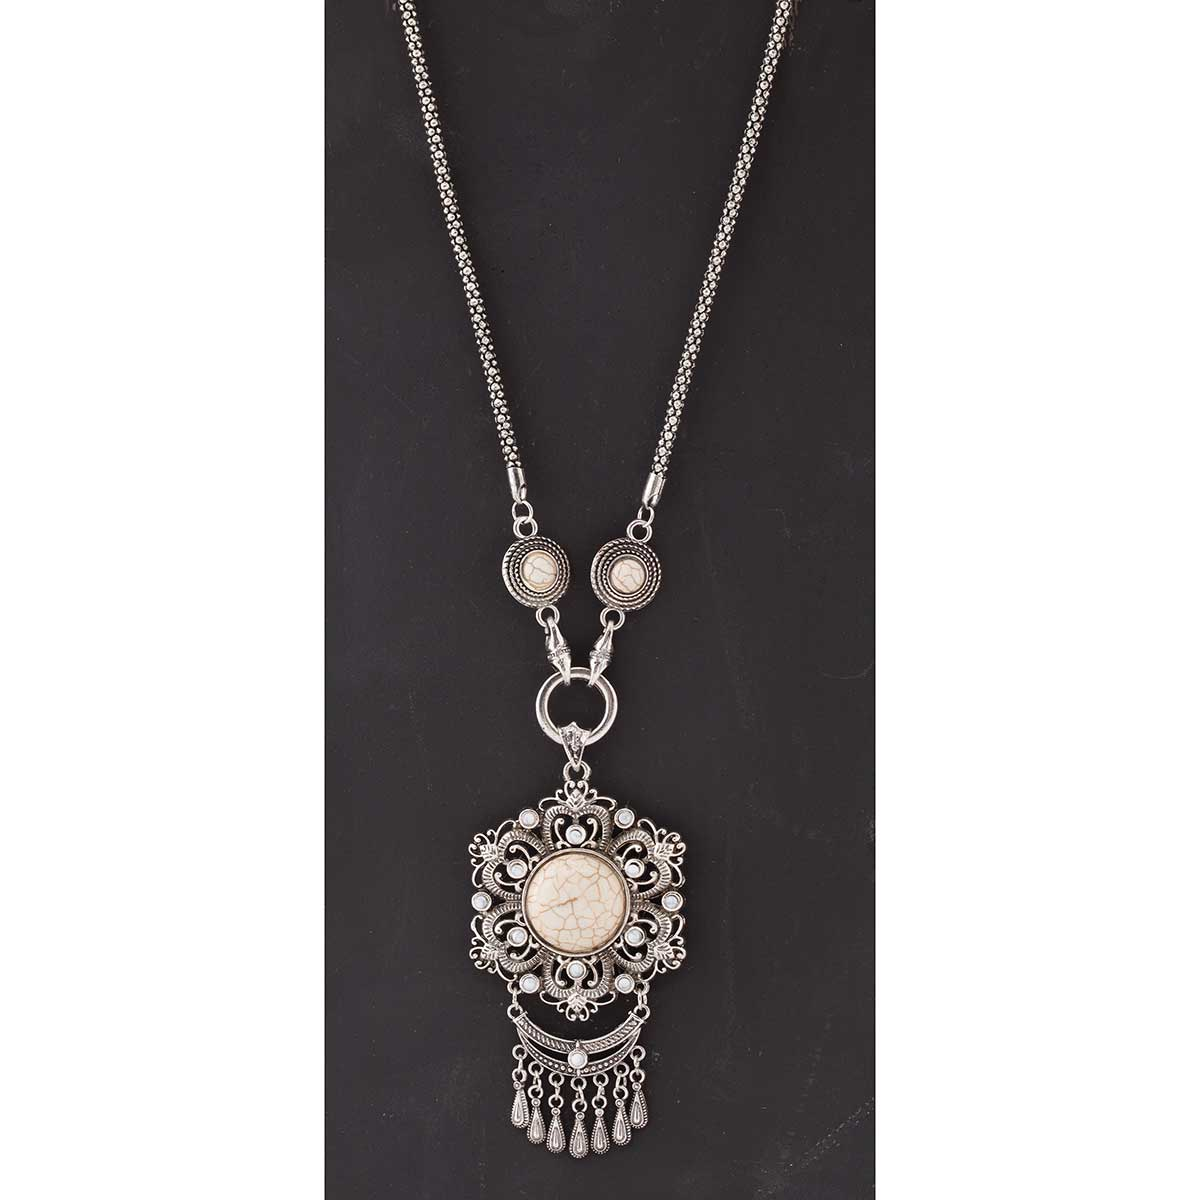 Antique Silver and White Flower Medallion Necklace